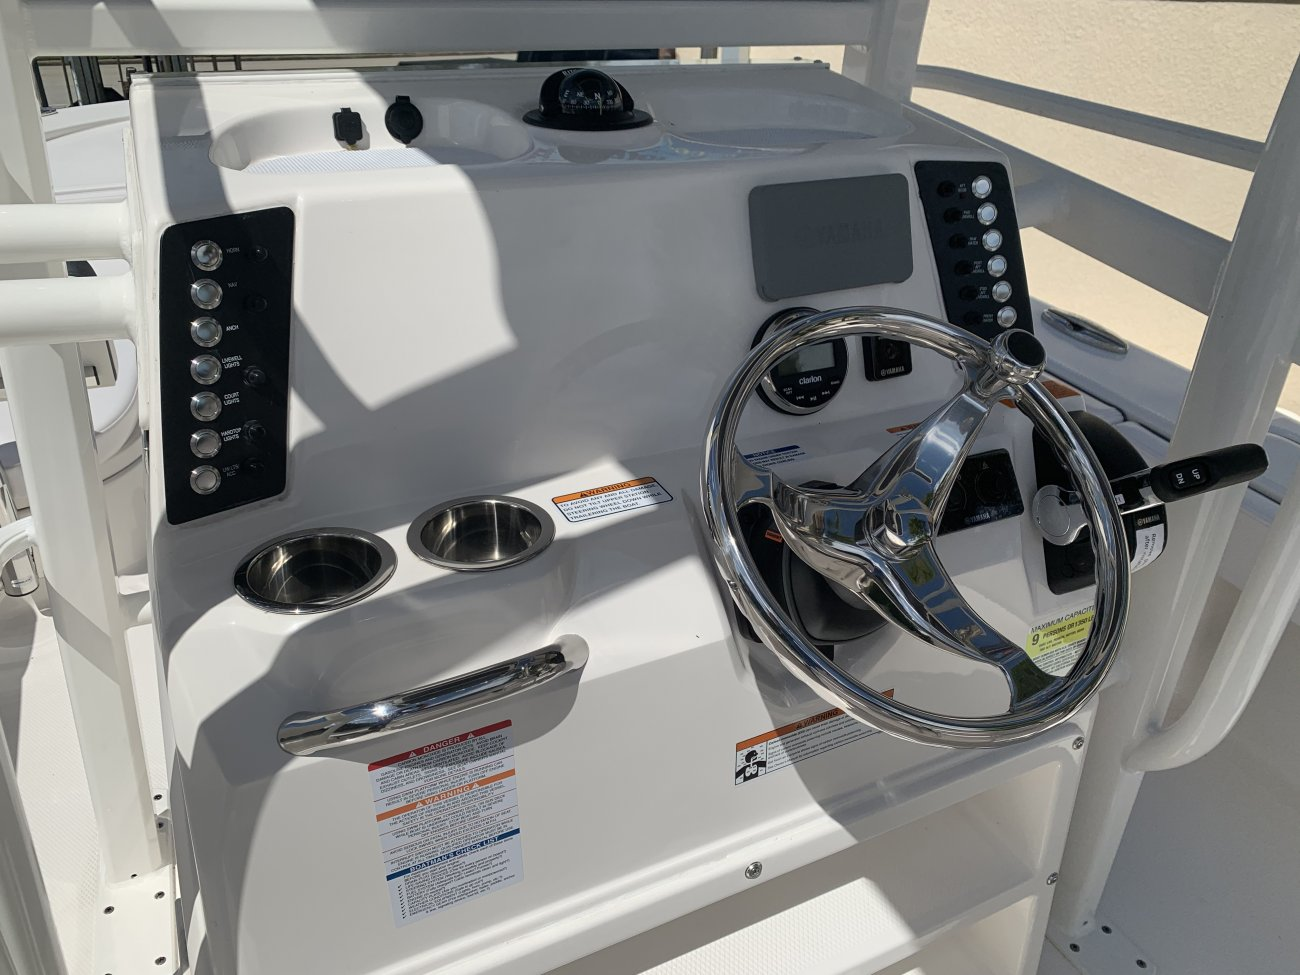 A flying bridge style boat is one that has a second piloting area (usually open) on top of a ship's main pilothouse. This serves as a second operating station where good views along the shipsides are important.